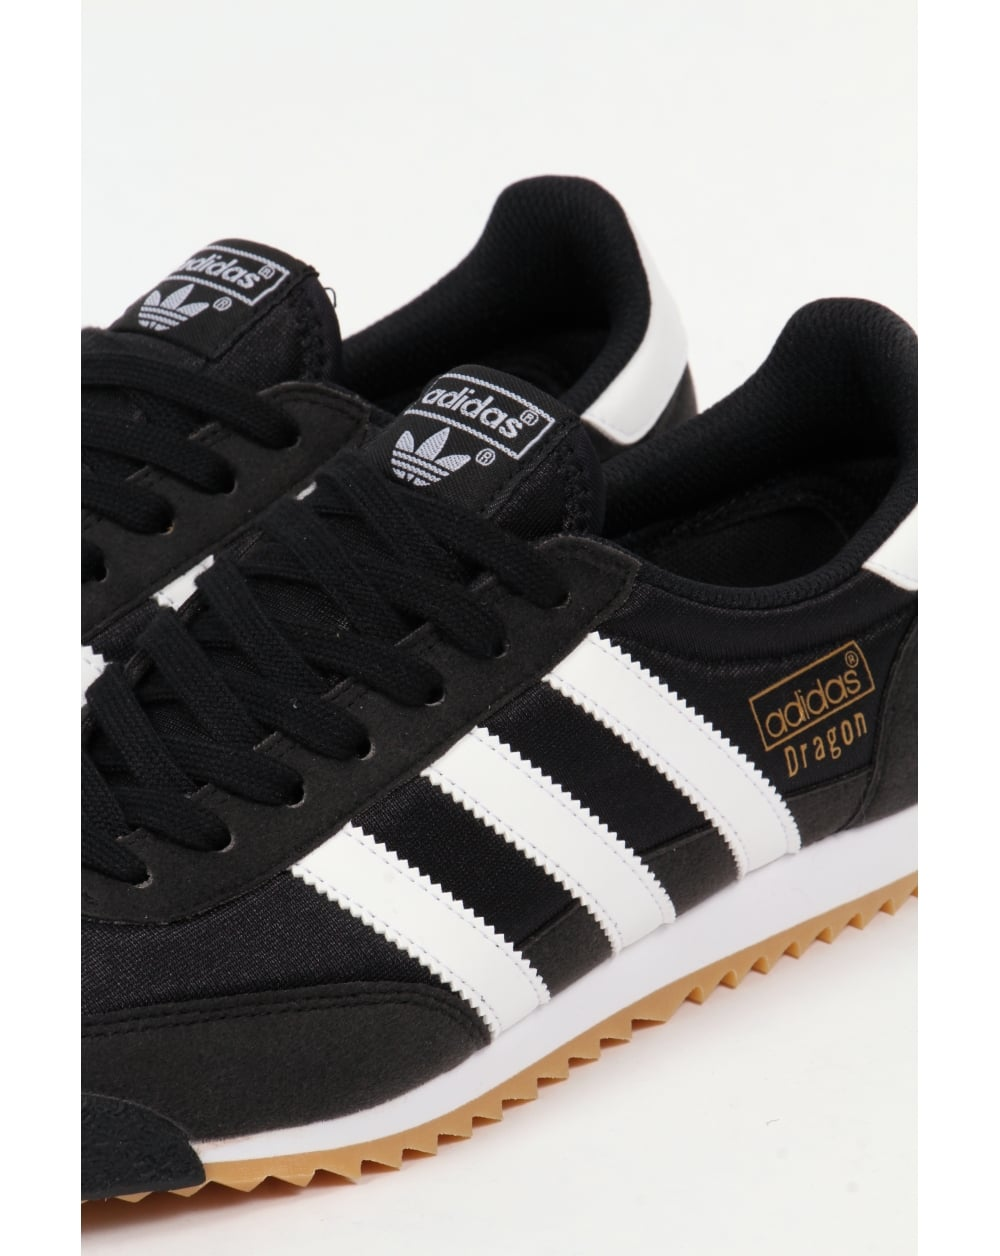 adidas black dragon trainers